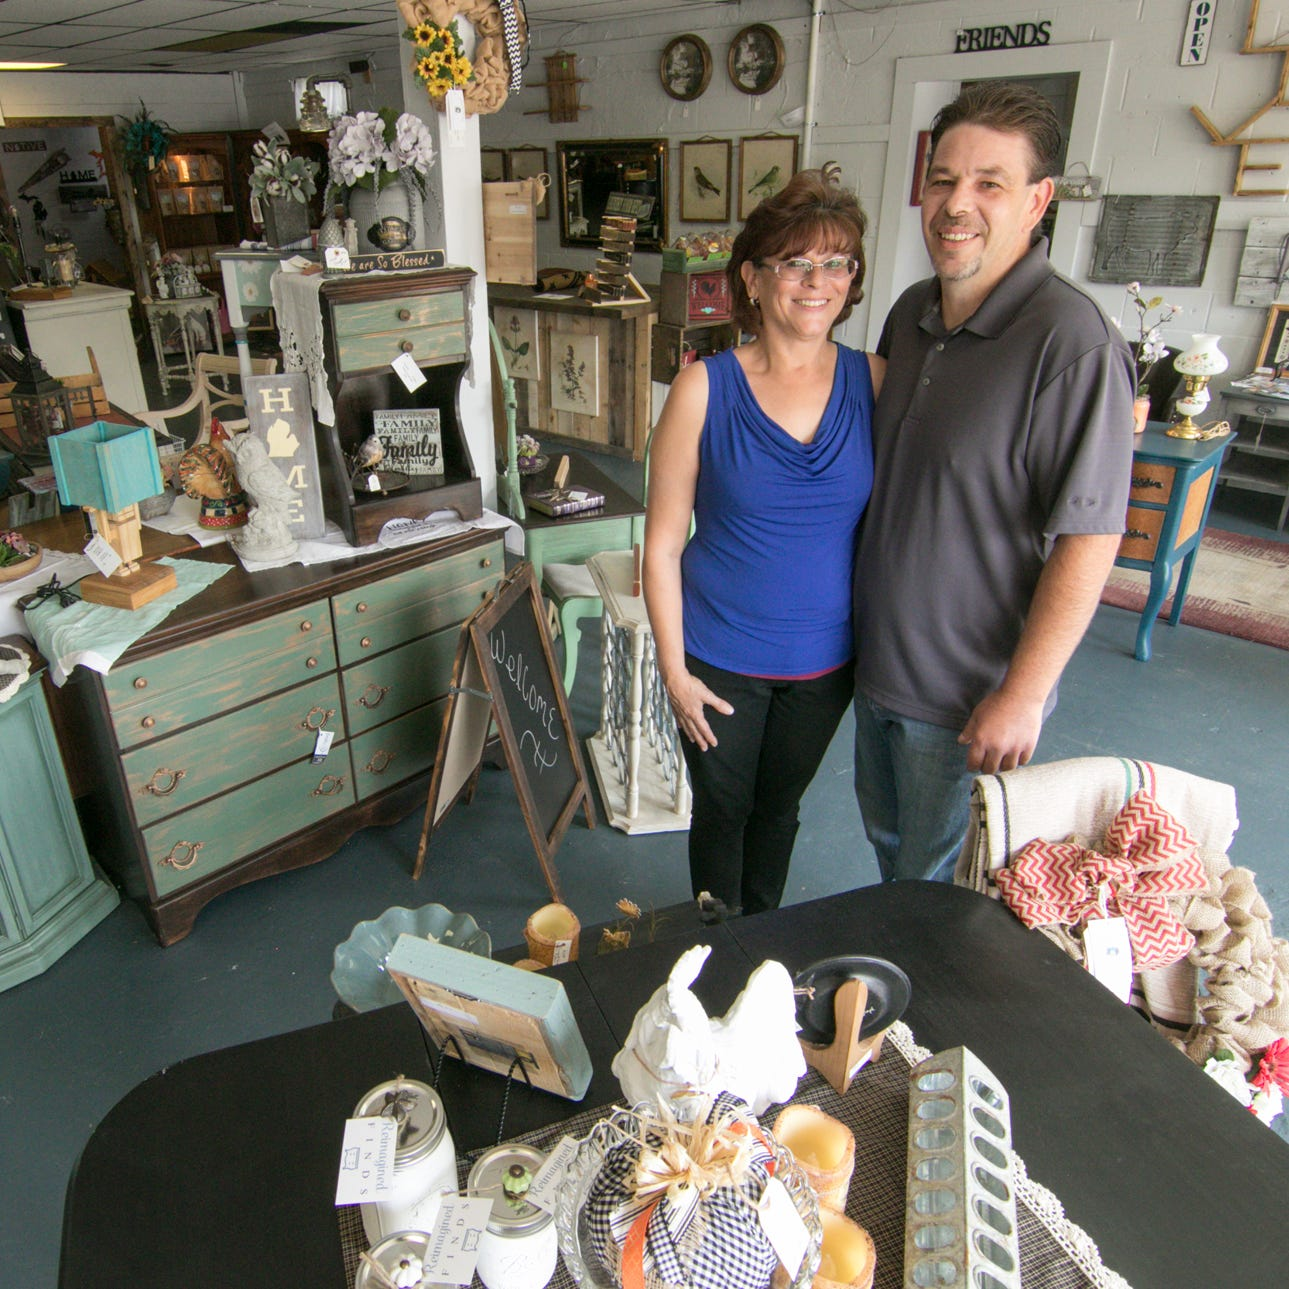 Shari Blackburn and Joe Pedrotti have opened Heritage Home Accents and Decor in Brighton Township, shown Thursday, Sept. 20, 2018.